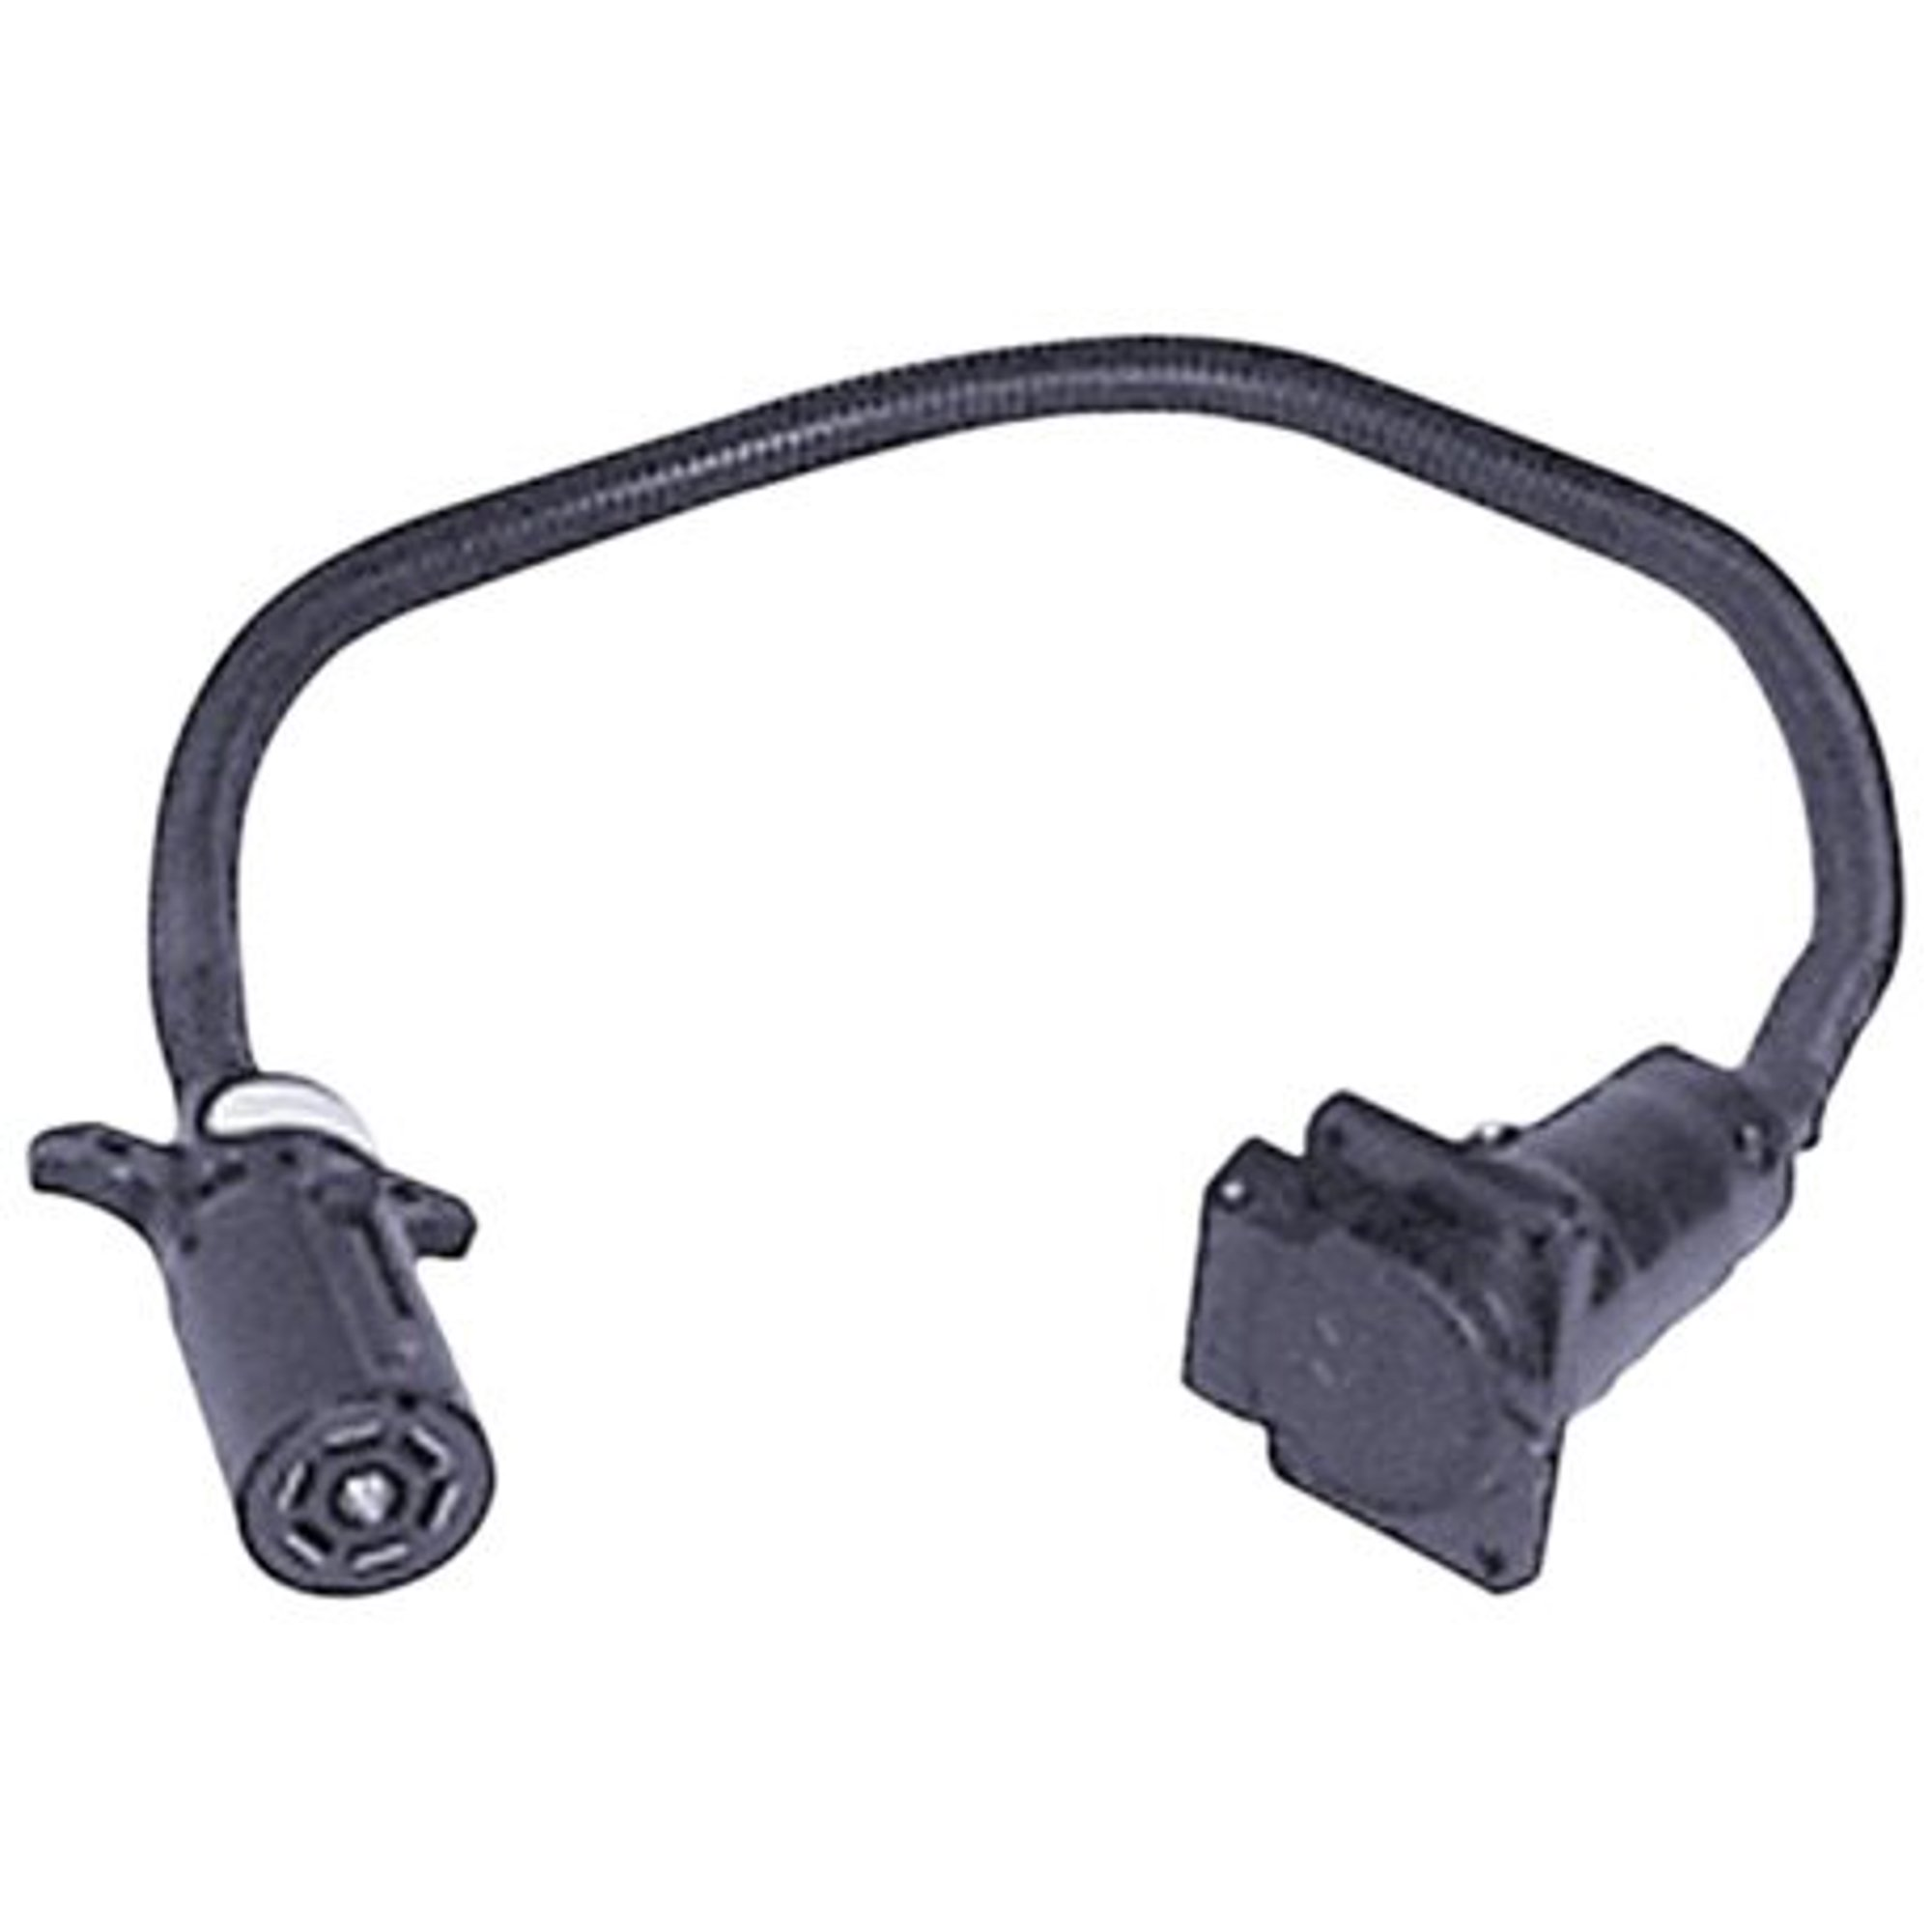 Torklift W6028 Trailer Wiring Connector SuperHitch Use With 28 Inch on 7 pin trailer hitch, 7 pin ignition switch, 7 pin cable, 7 pin wire colors, 7 pin trailer lights, 96 gmc suburban trailer harness, 7 pin wiring diagram for semi truck, 7 pin tow wiring,